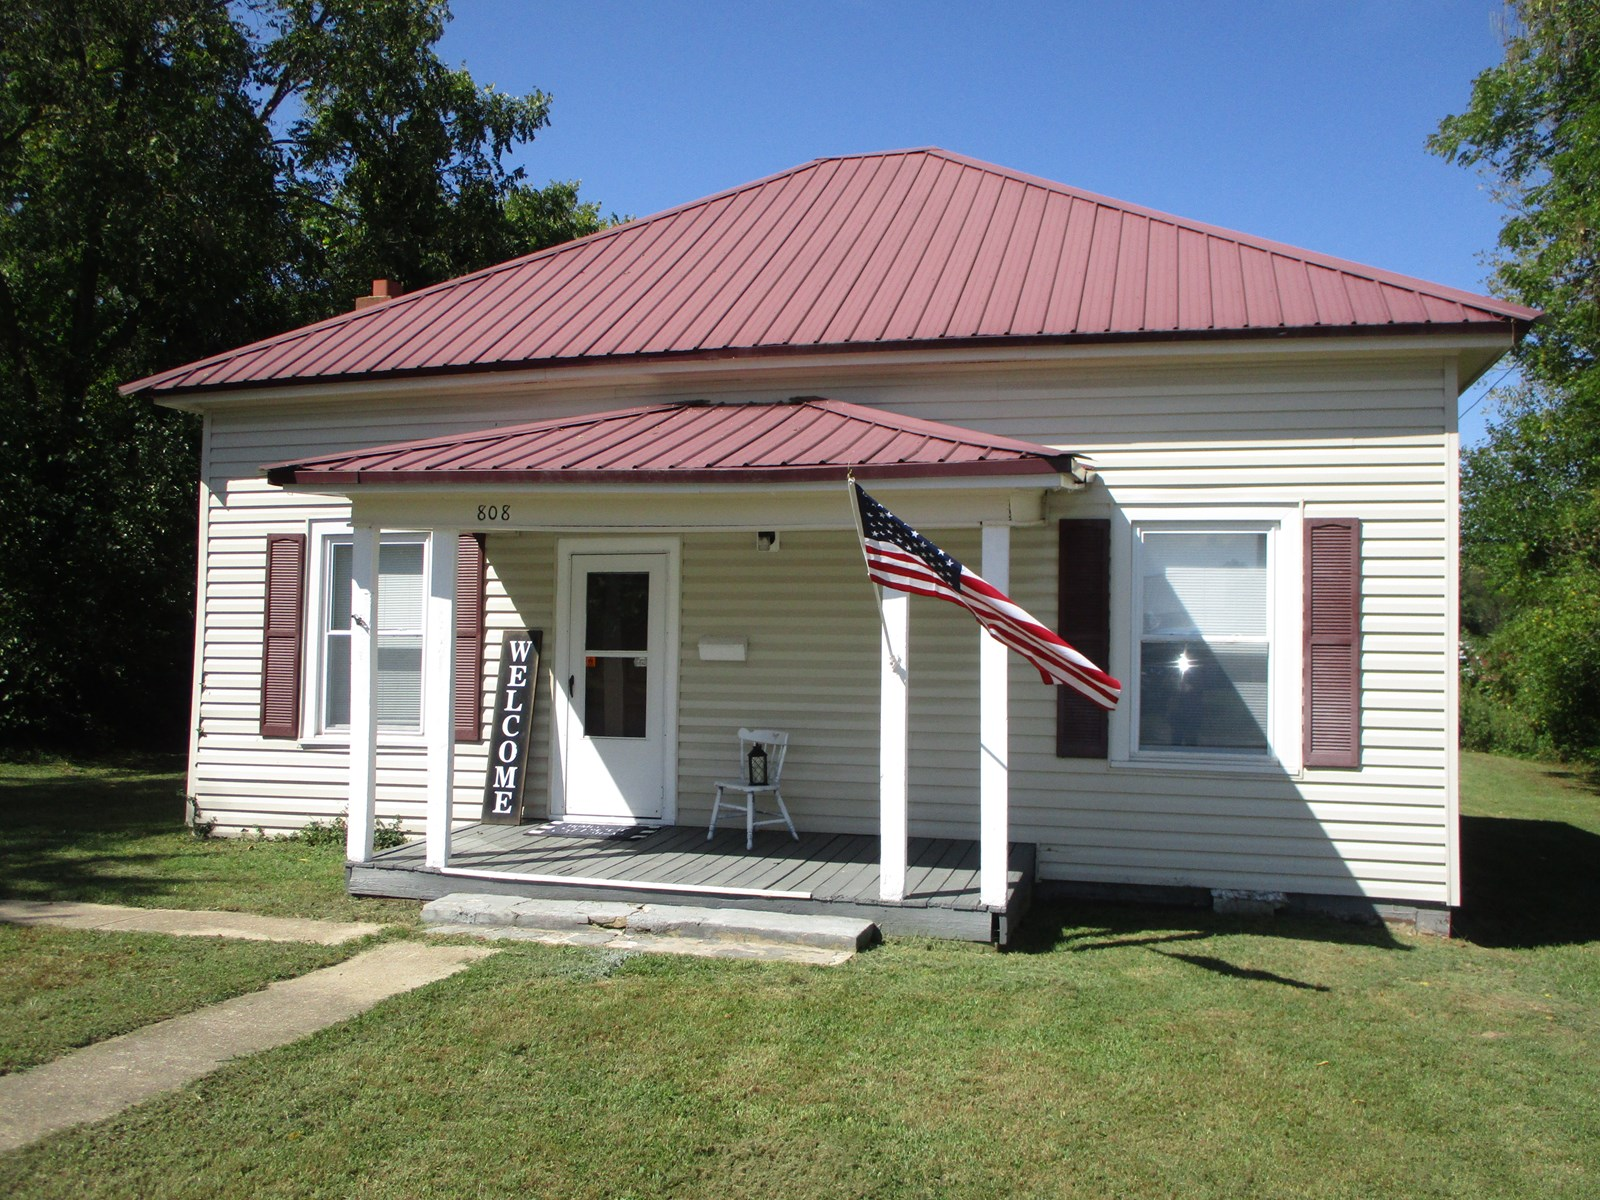 Recently updated 3 Bedroom, 1 Bath home on large lot.